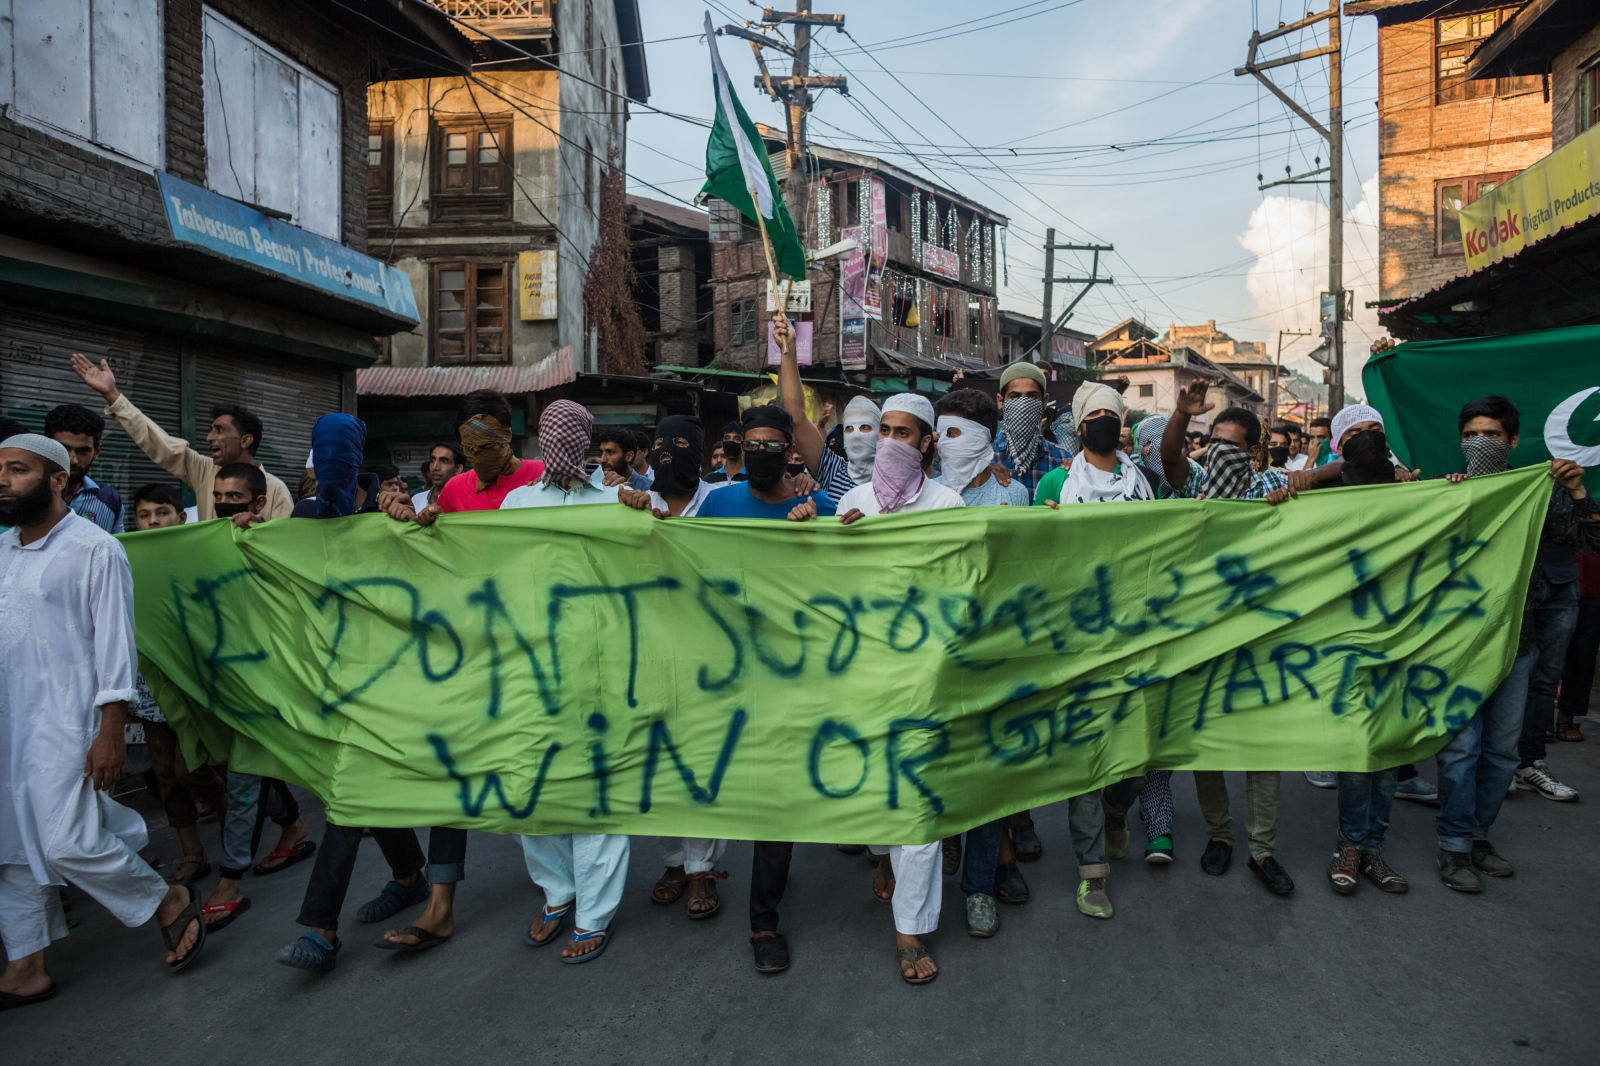 Kashmiri demonstrators carry a banner that reads, 'We don't surrender, we win or get martyred' through downtown Srinagar on August 12, 2016. Peaceful protests, often organised locally, see demonstrators chanting slogans and carrying banners, led by a small group to ensure order. Some lead clashes with Indian security personnel who disallow these types of gatherings.